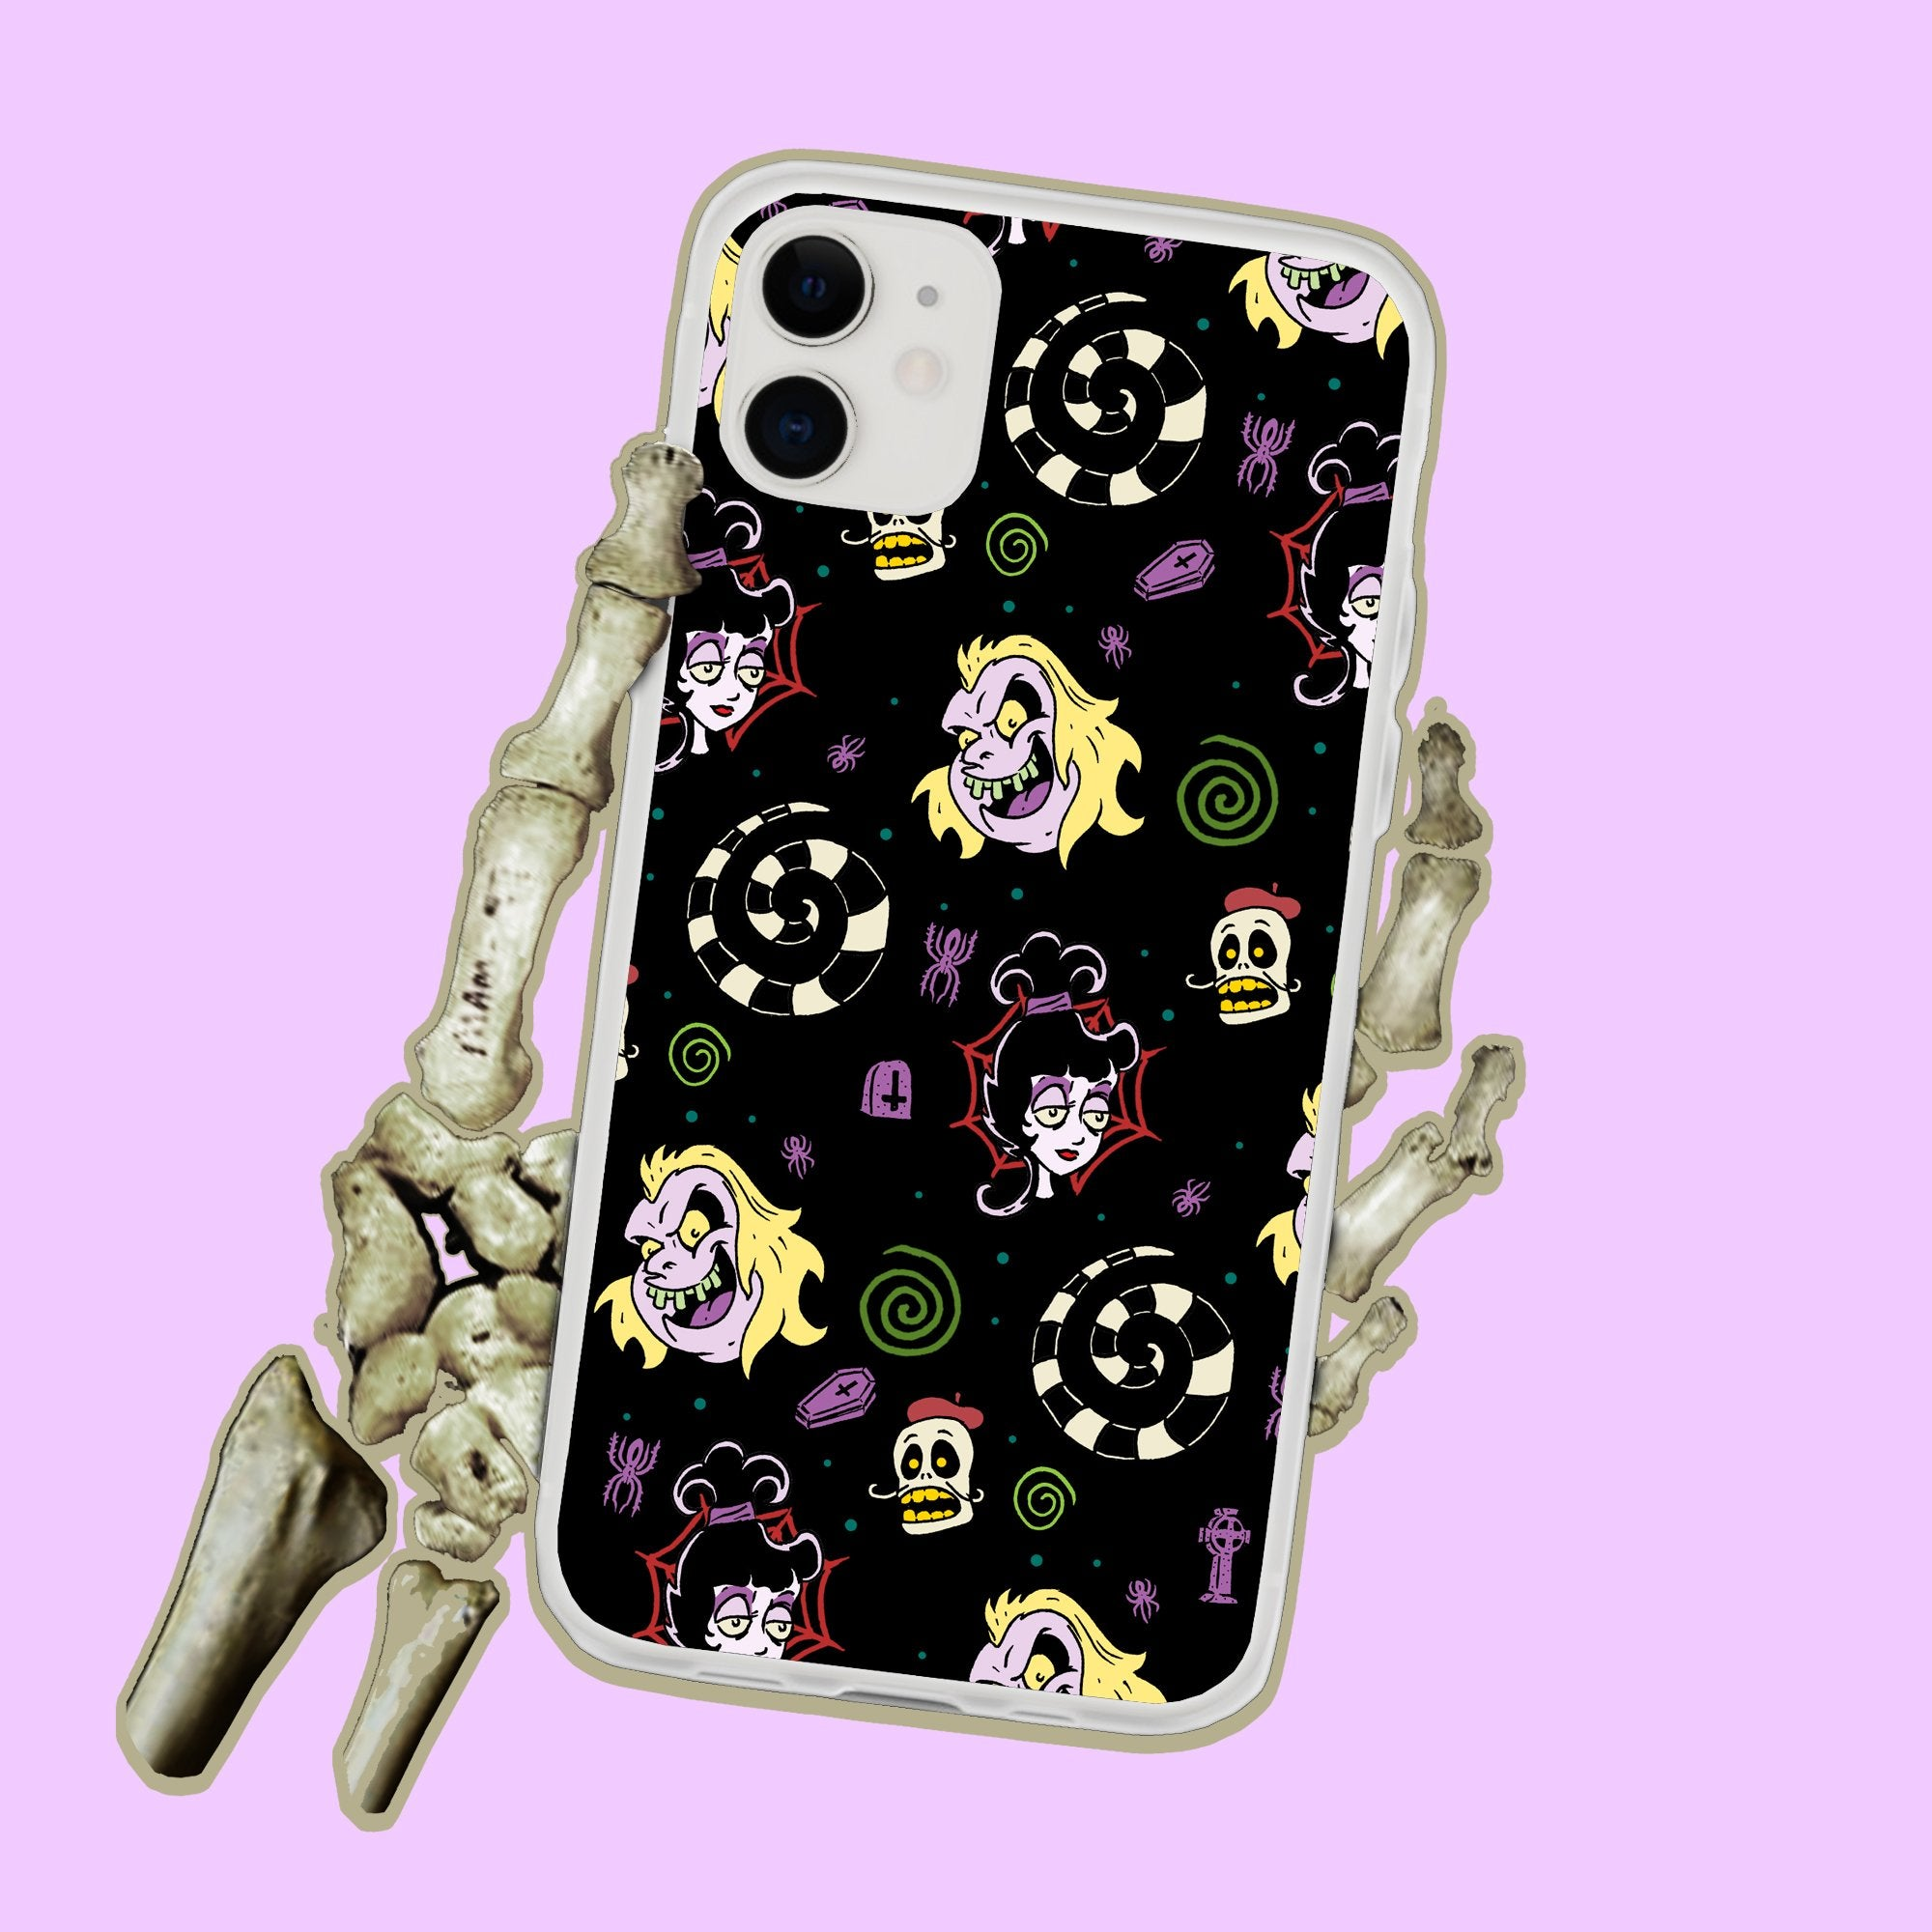 Beetlejuice And Lydia Deetz Iphone Case